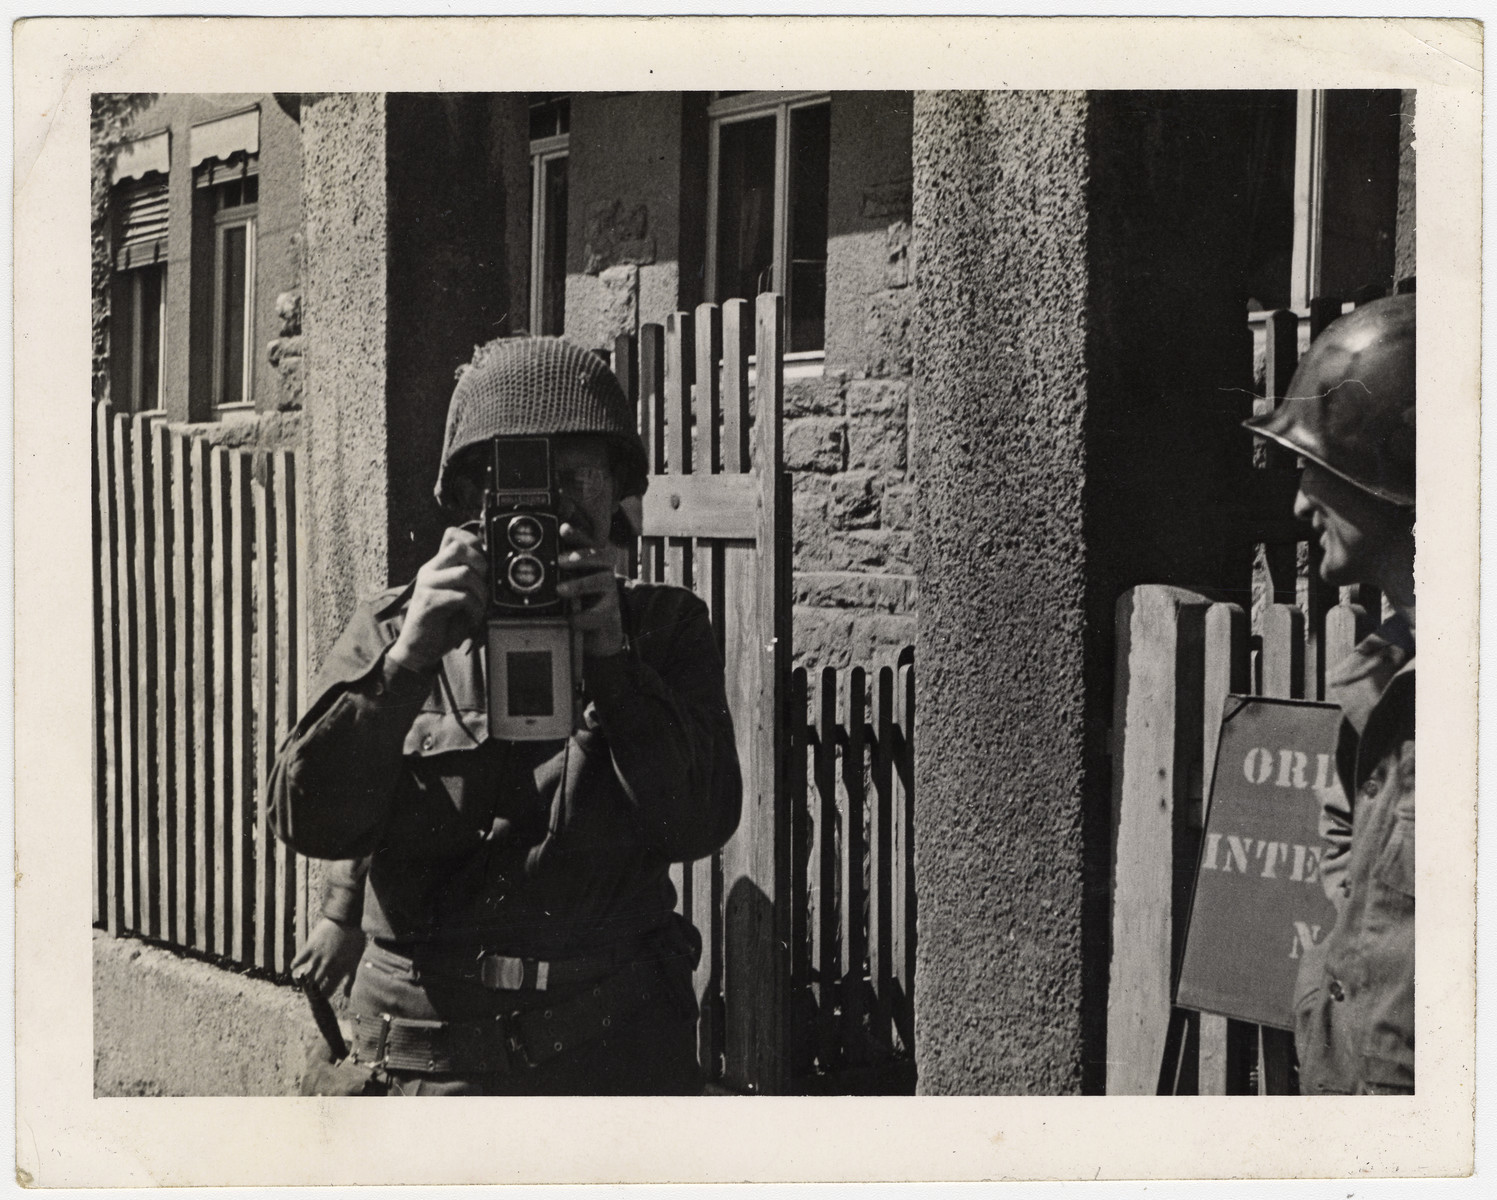 Self-portrait of U.S. Army photographer William Bostwick Curtis taking a picture with his camera.